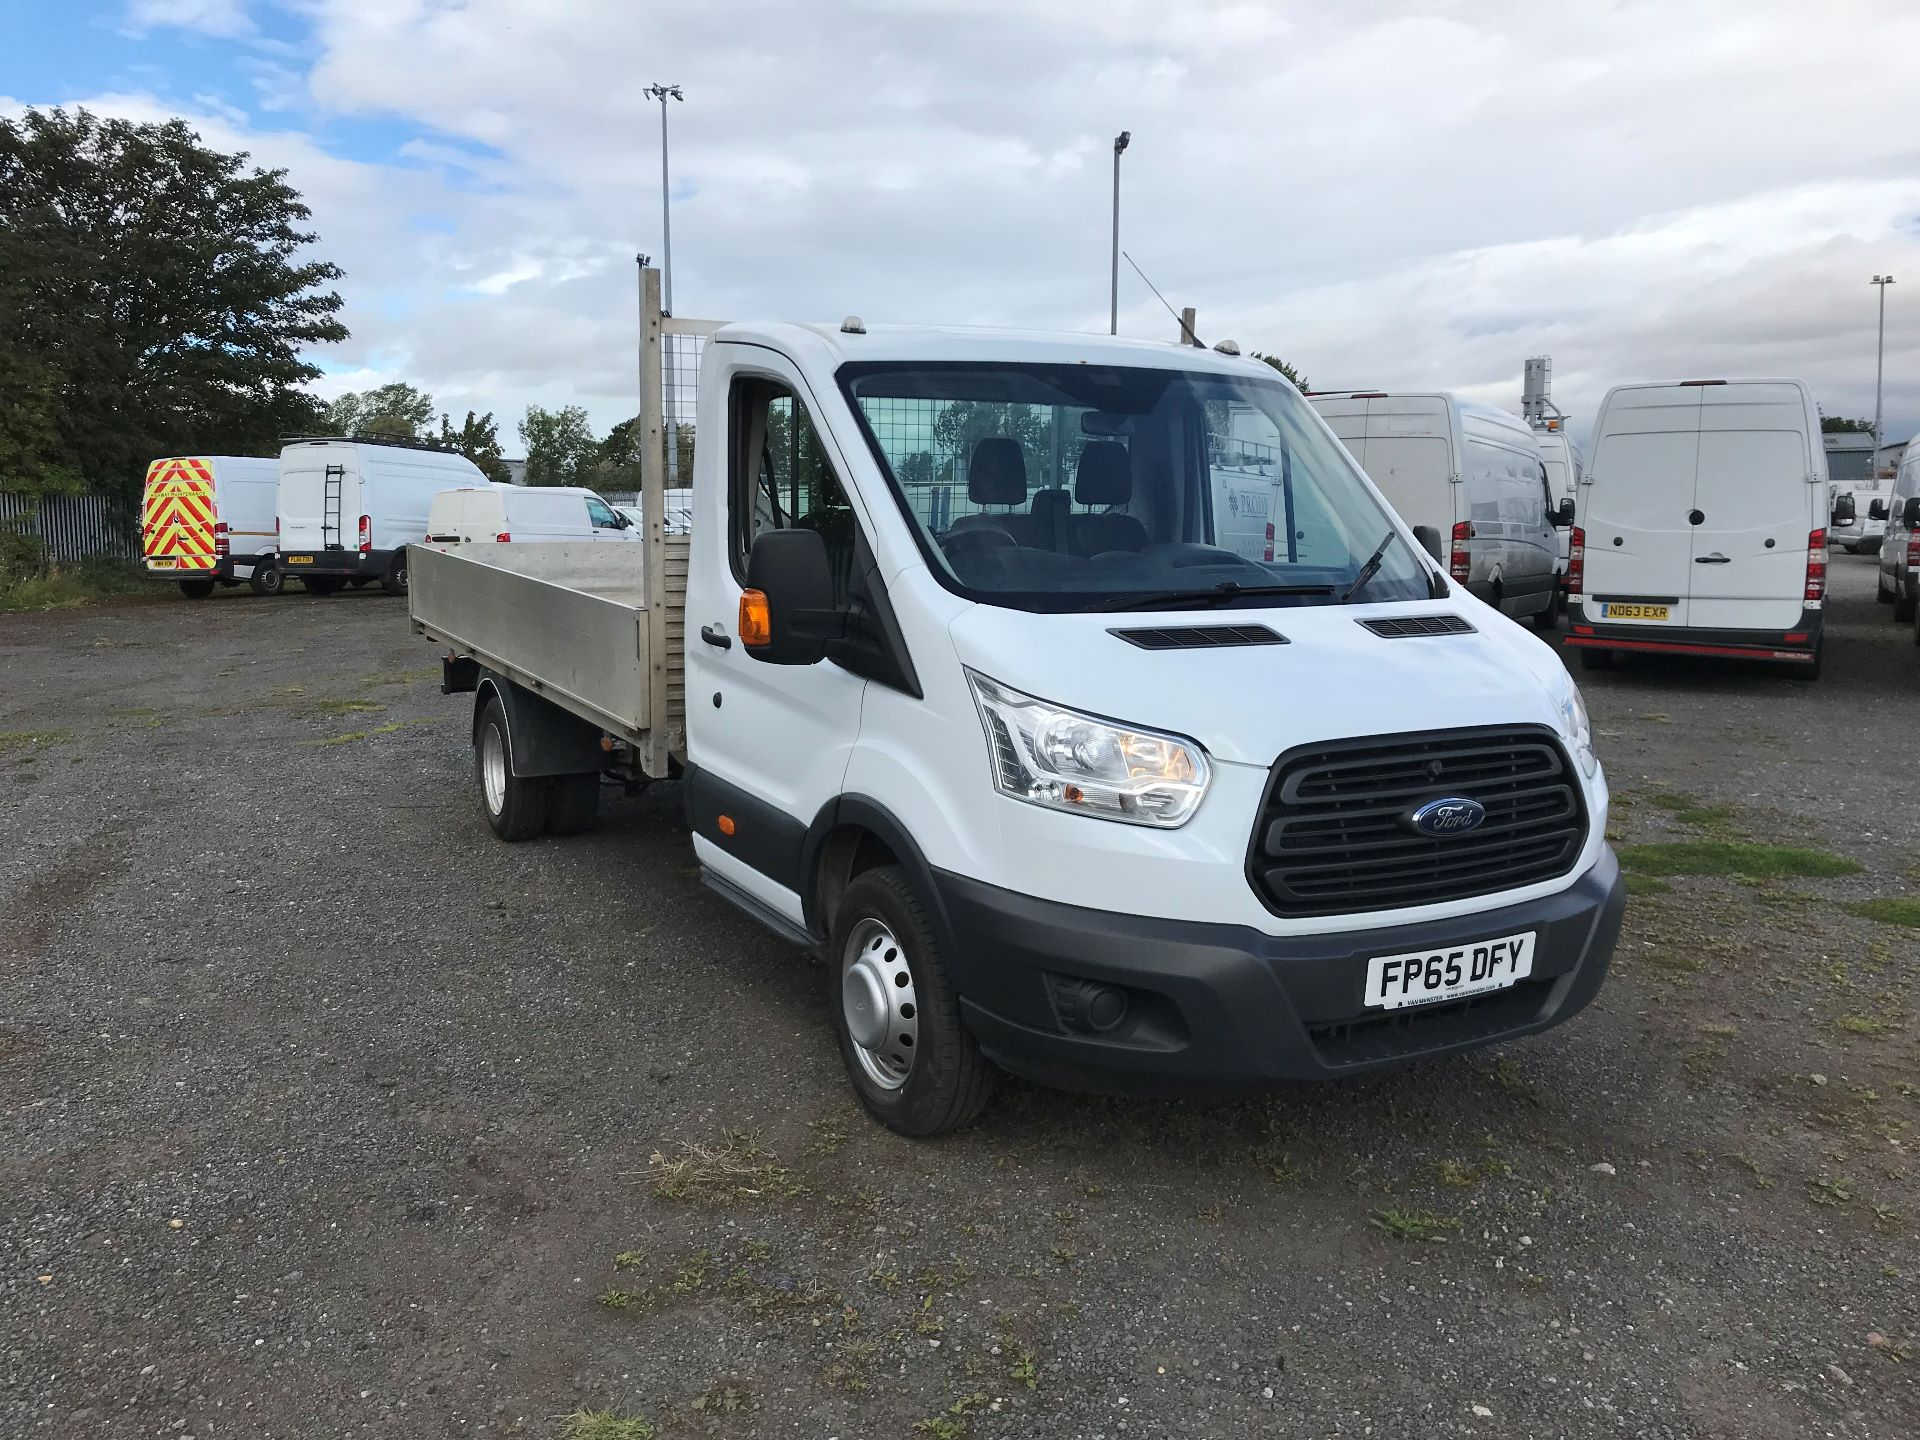 2016 Ford Transit 2.2 Tdci 125Ps Chassis Cab  *VALUE RANGE VEHICLE CONDITION REFLECTED IN PRICE* (FP65DFY)